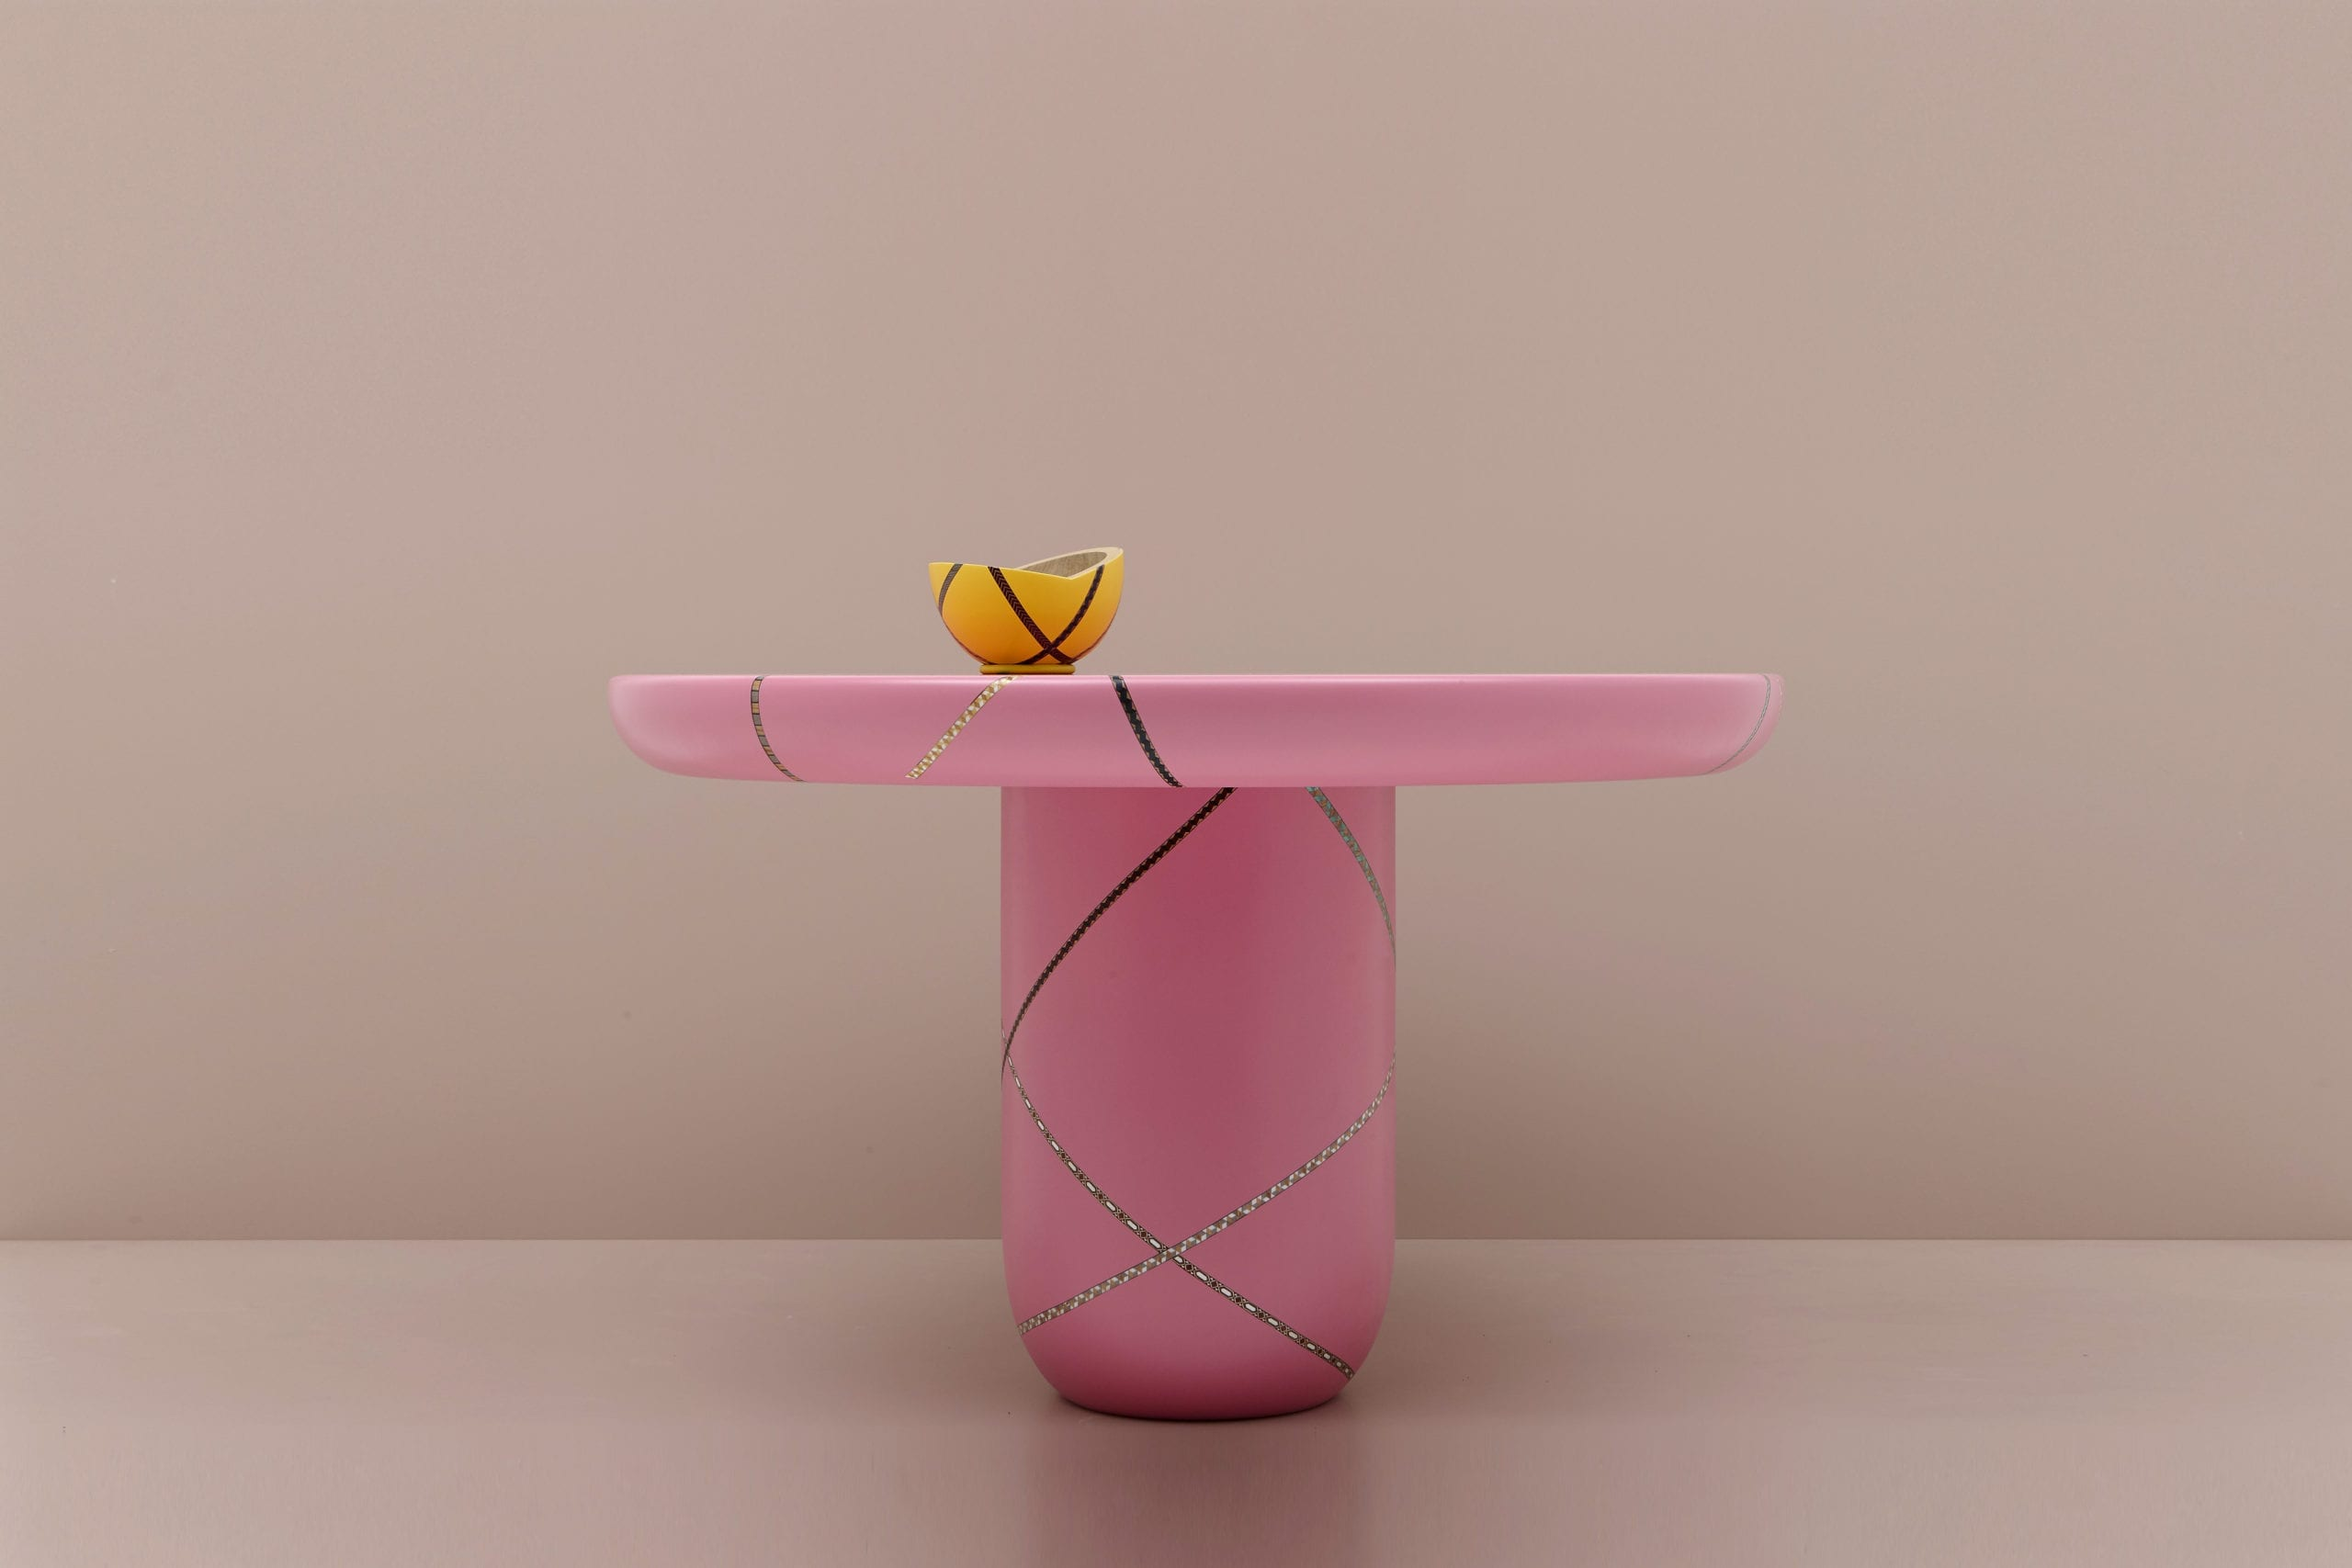 Marquetery Mania Center Dining Table by Nada Debs